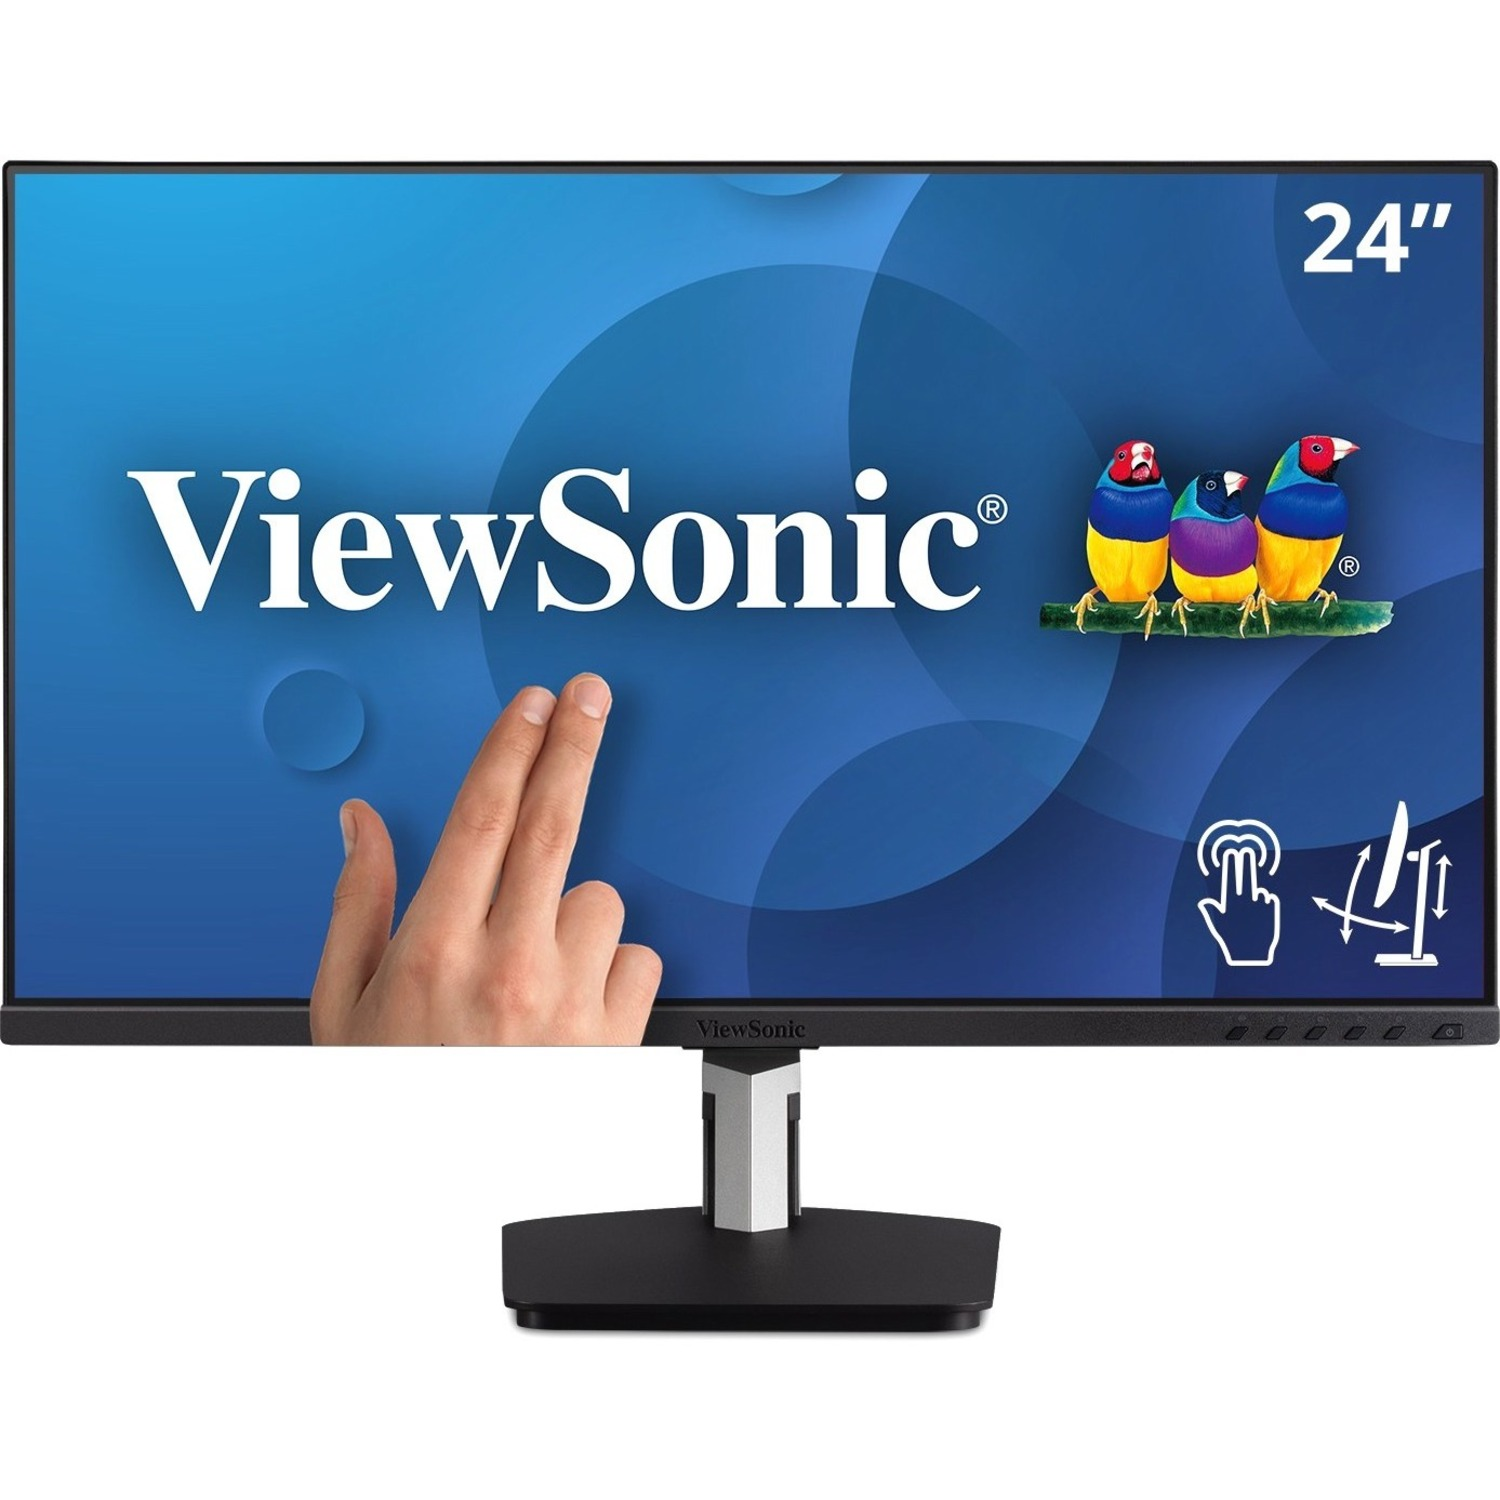 """Viewsonic TD2455 23.8"""" LCD Touchscreen Monitor - 16:9 - 6 ms GTG (OD)_subImage_1"""